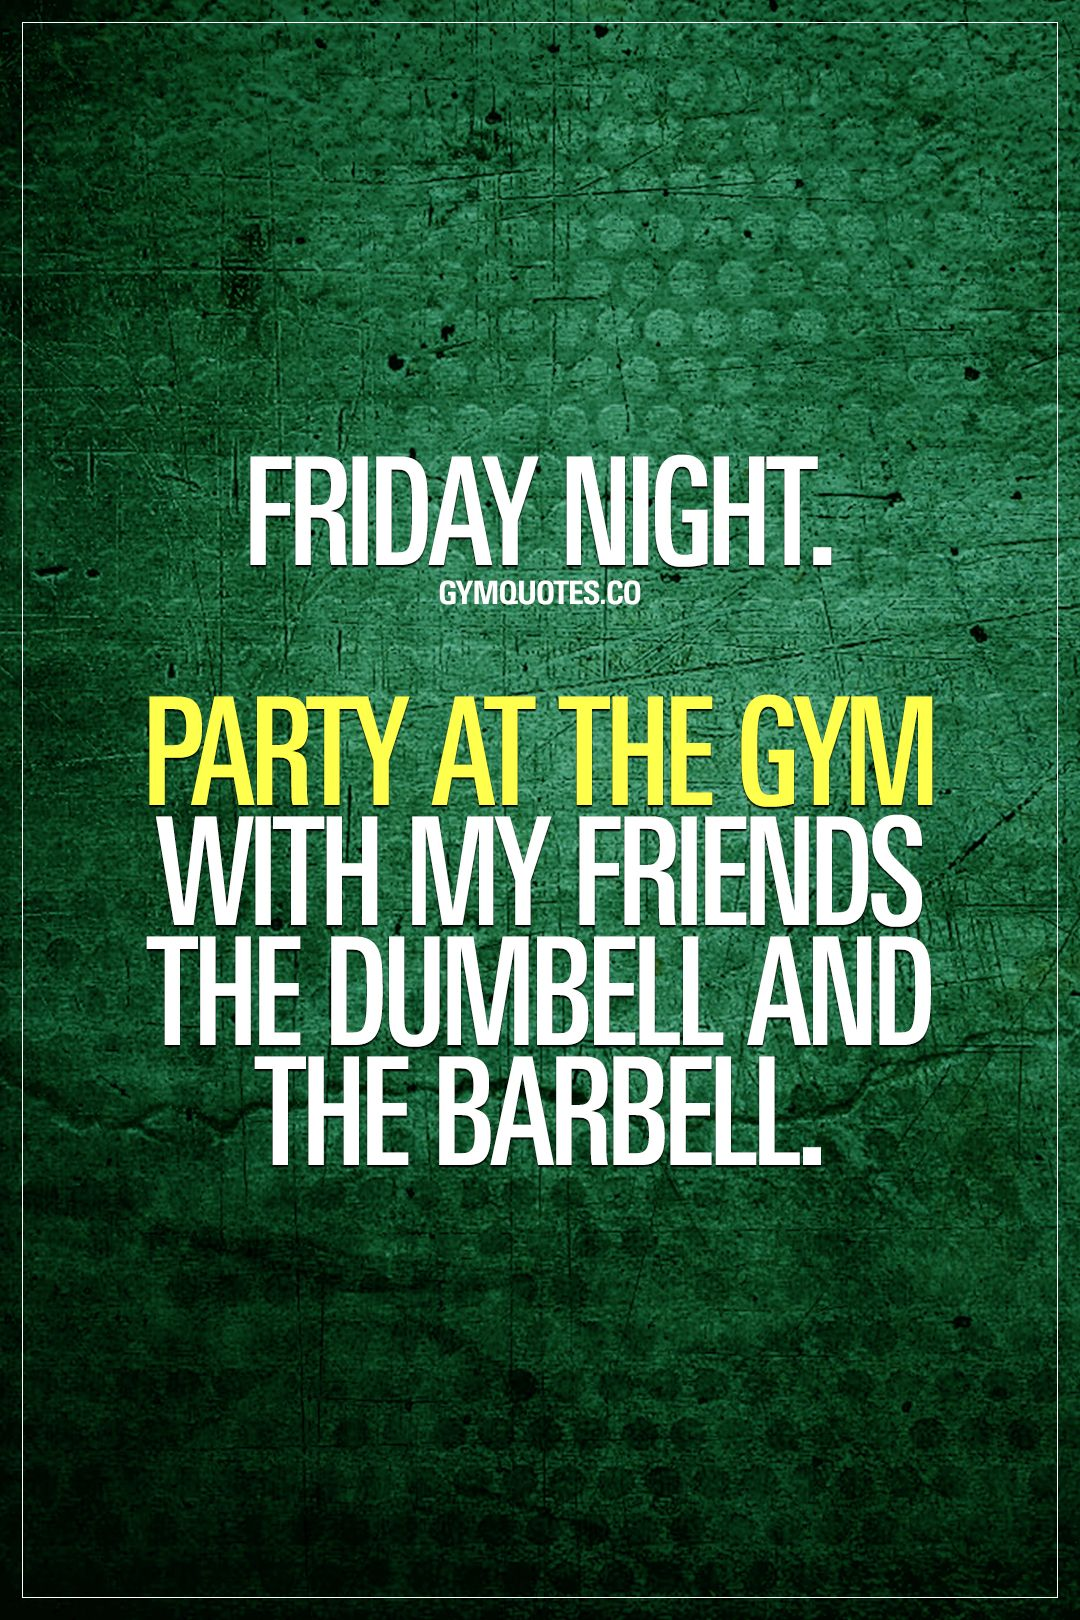 Friday Night Party At The Gym With My Friends The Dumbell And The Barbell Oh Yes It S Friday Finally An Funny Gym Quotes Gym Quote Friday Quotes Funny